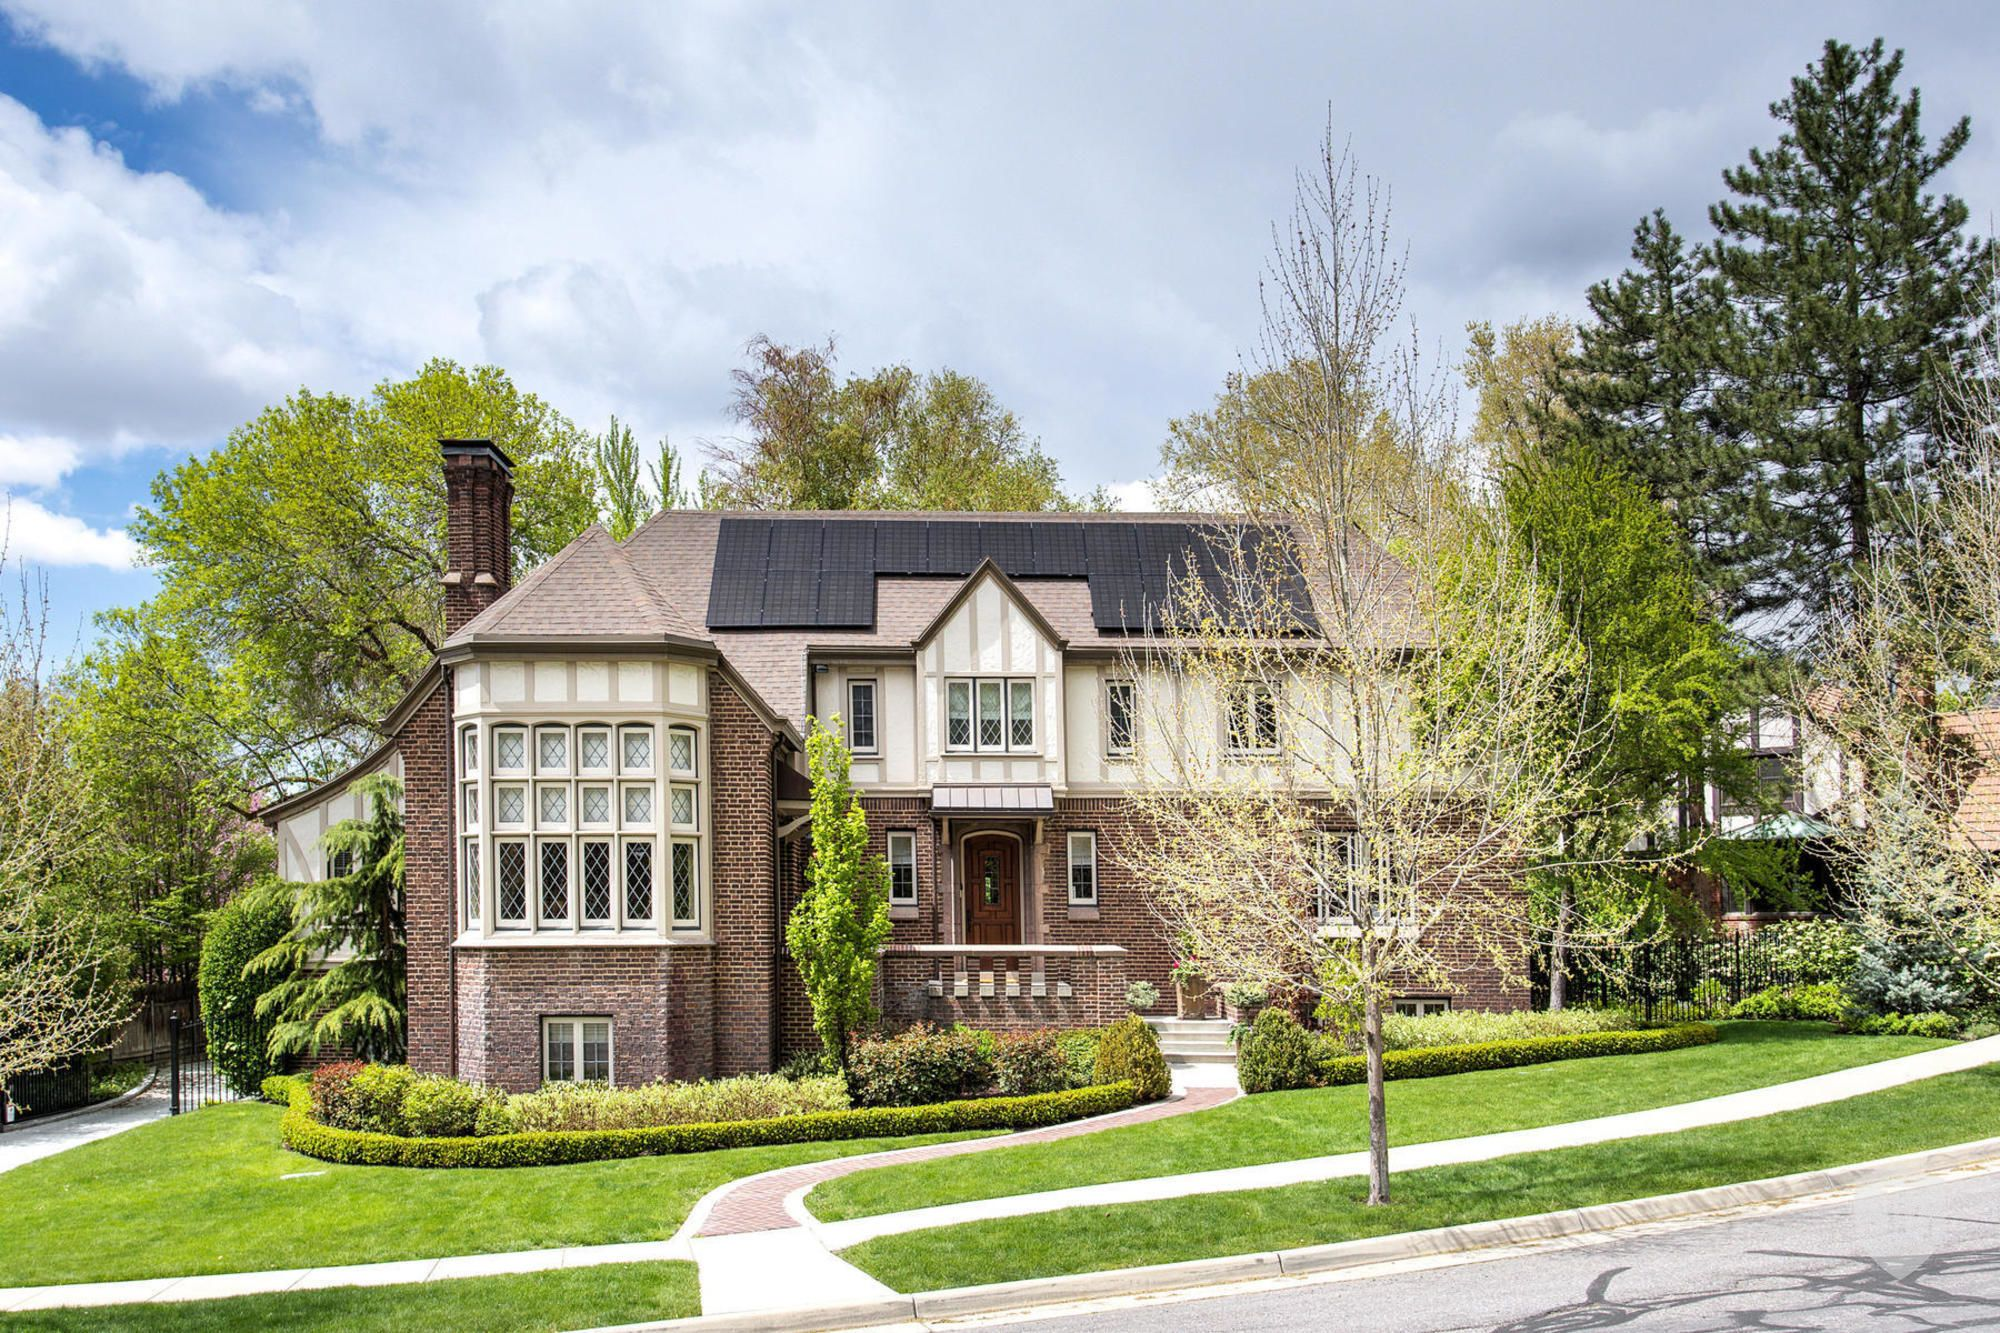 Tudor Style Mansion In Federal Heights In Salt Lake City Ut United States For Sale 10271072 Mansions Classic Architecture Salt Lake City Ut